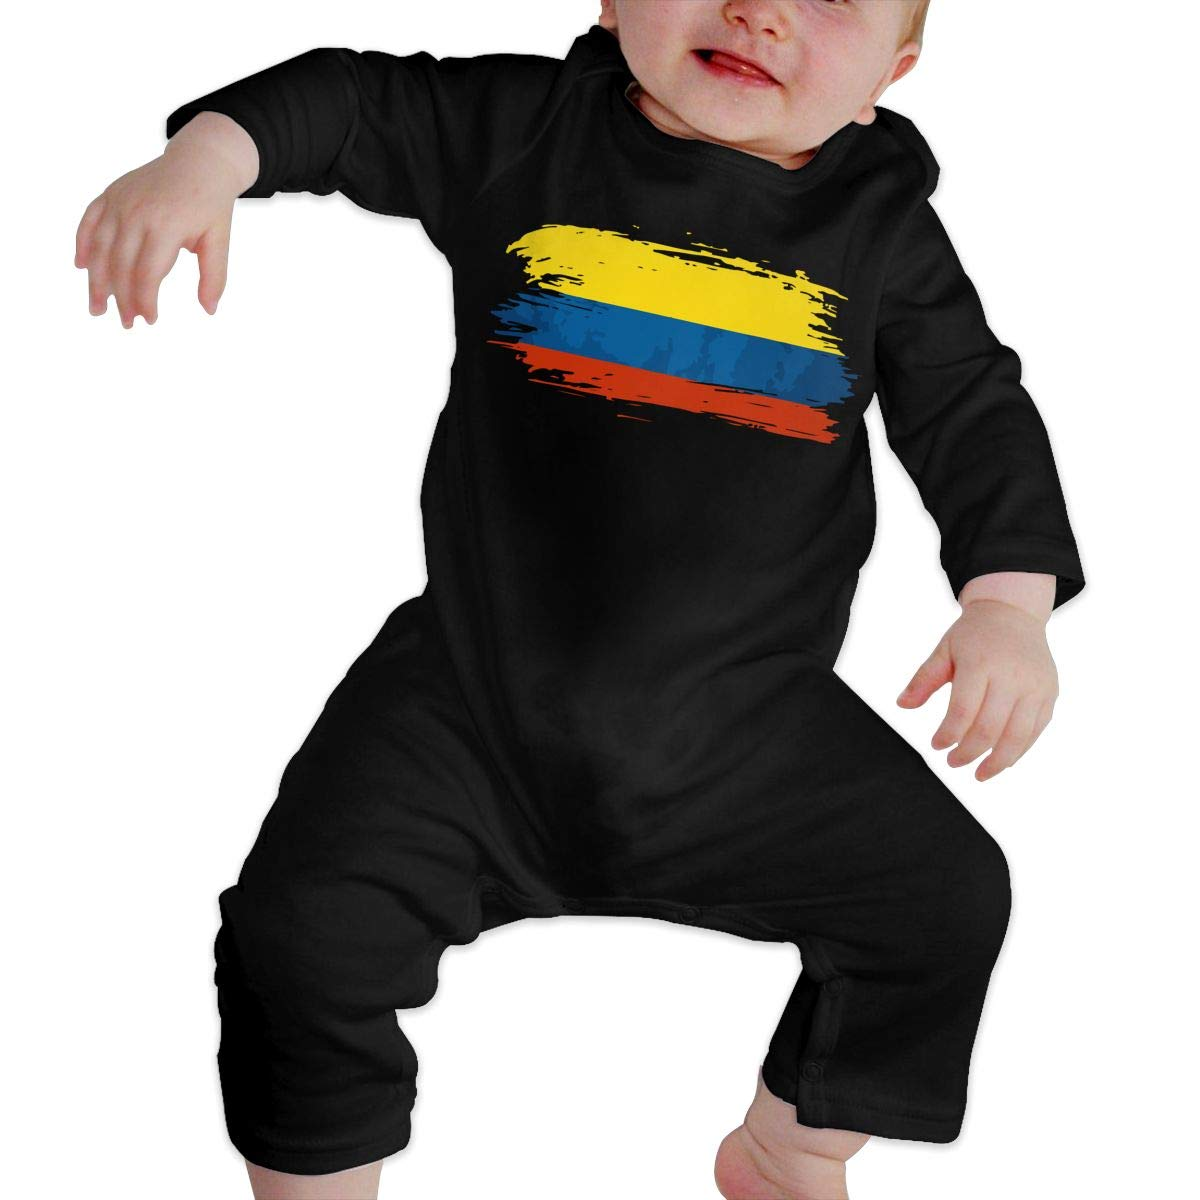 Suit 6-24 Months Q64 Toddler Round Collar Colombia Flag Long Sleeve Romper Jumpsuit 100/% Cotton